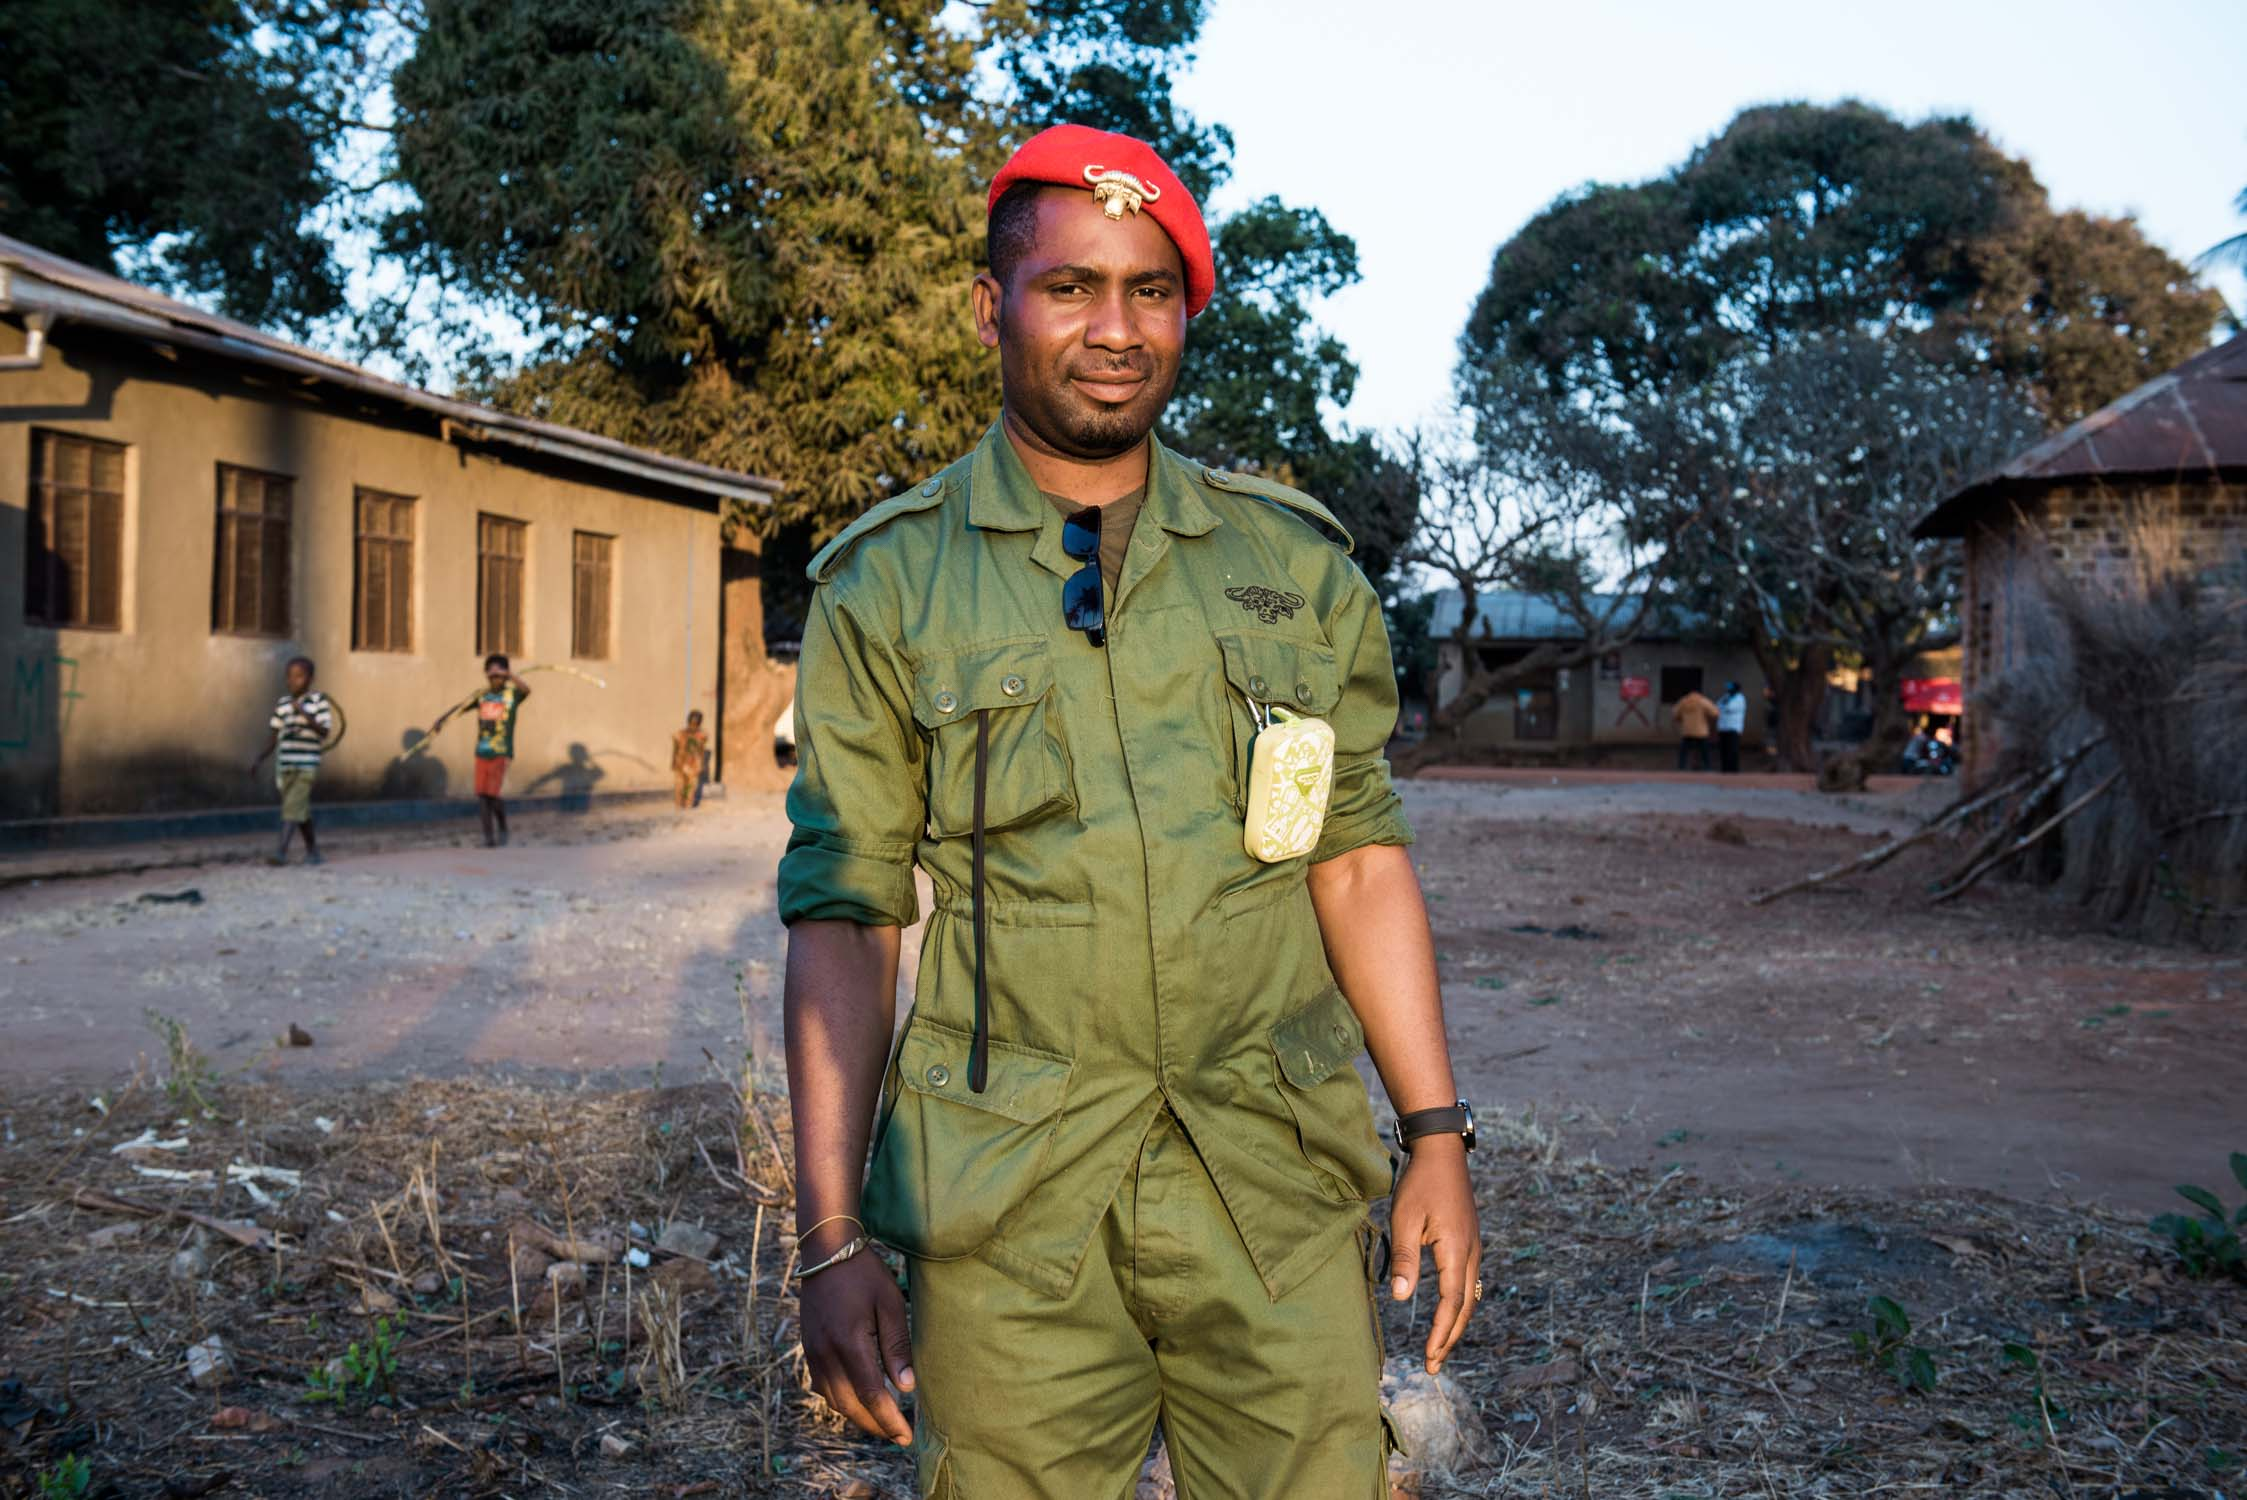 A District Game Warden at Namtumbo District.